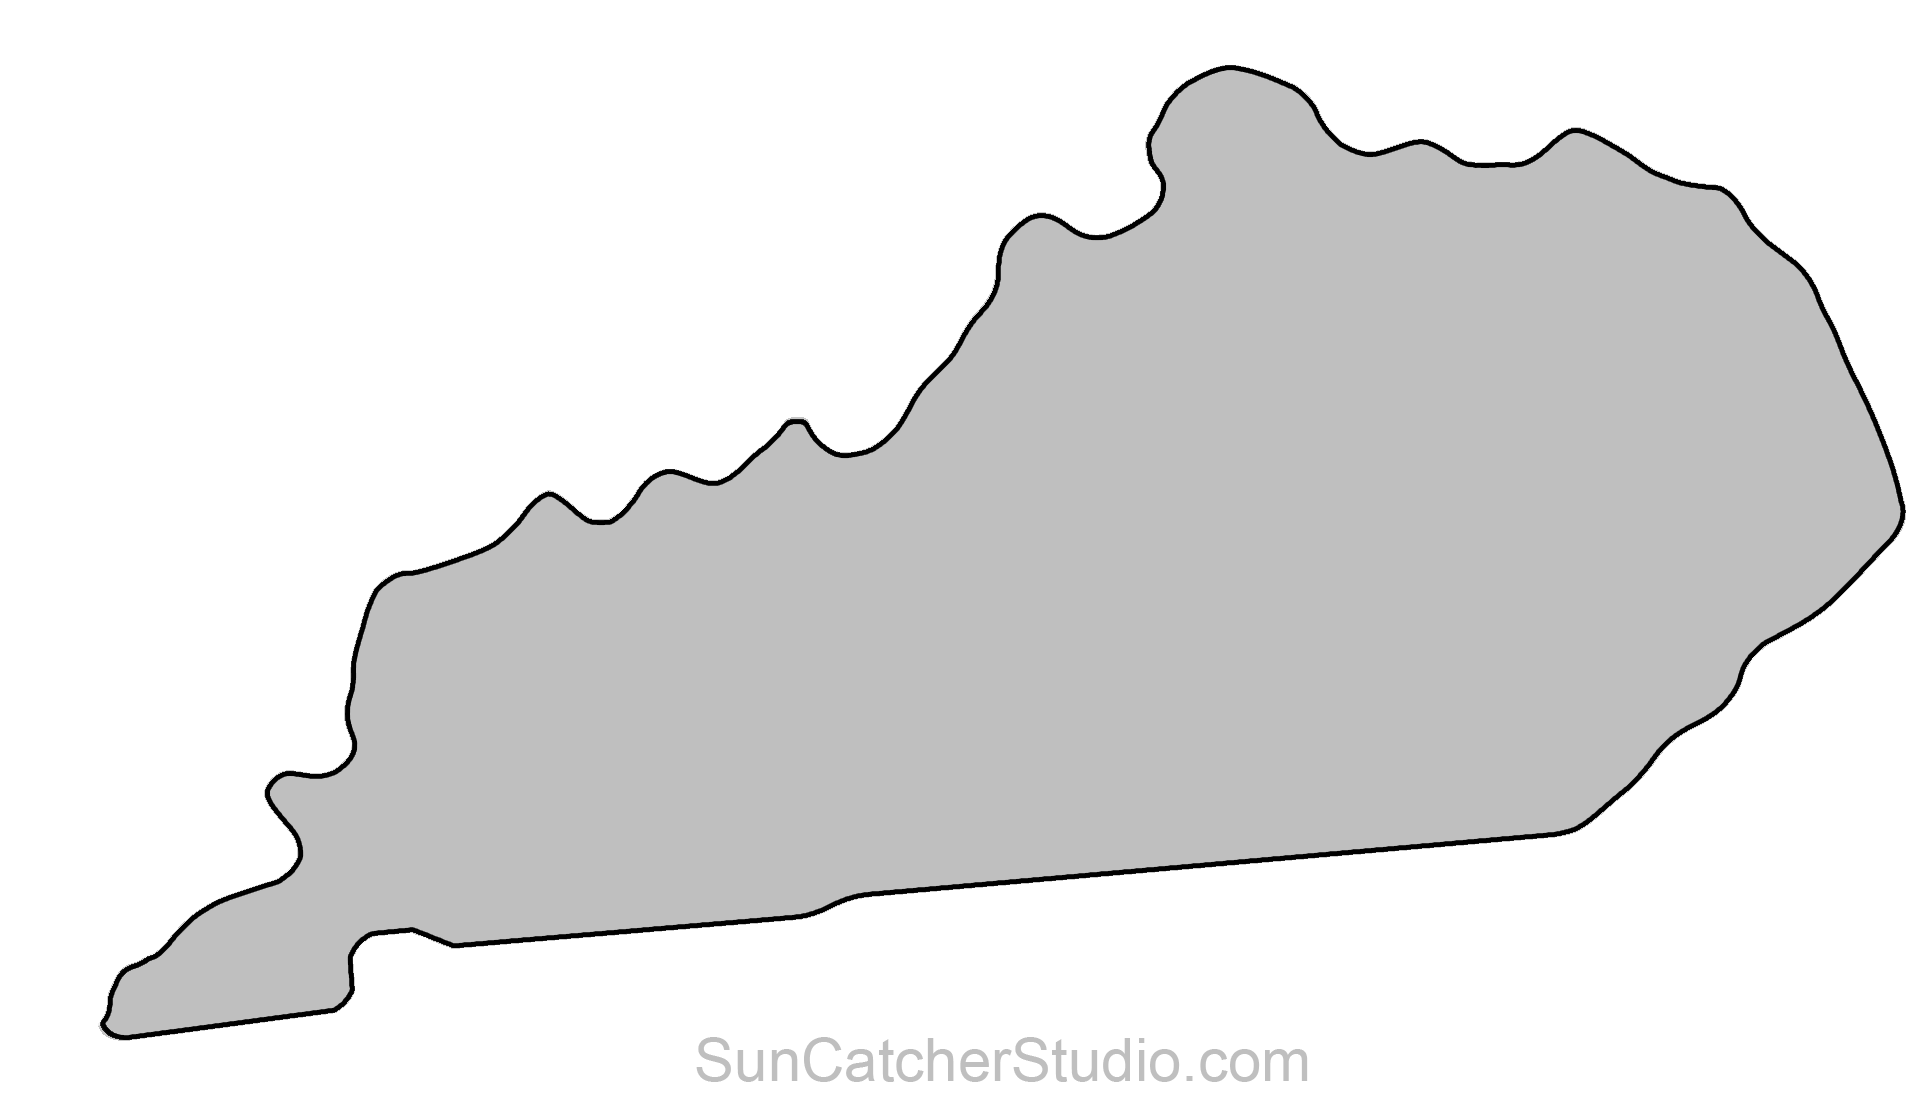 State of kentucky outline clipart image library download Kentucky - Map Outline, Printable State, Shape, Stencil ... image library download